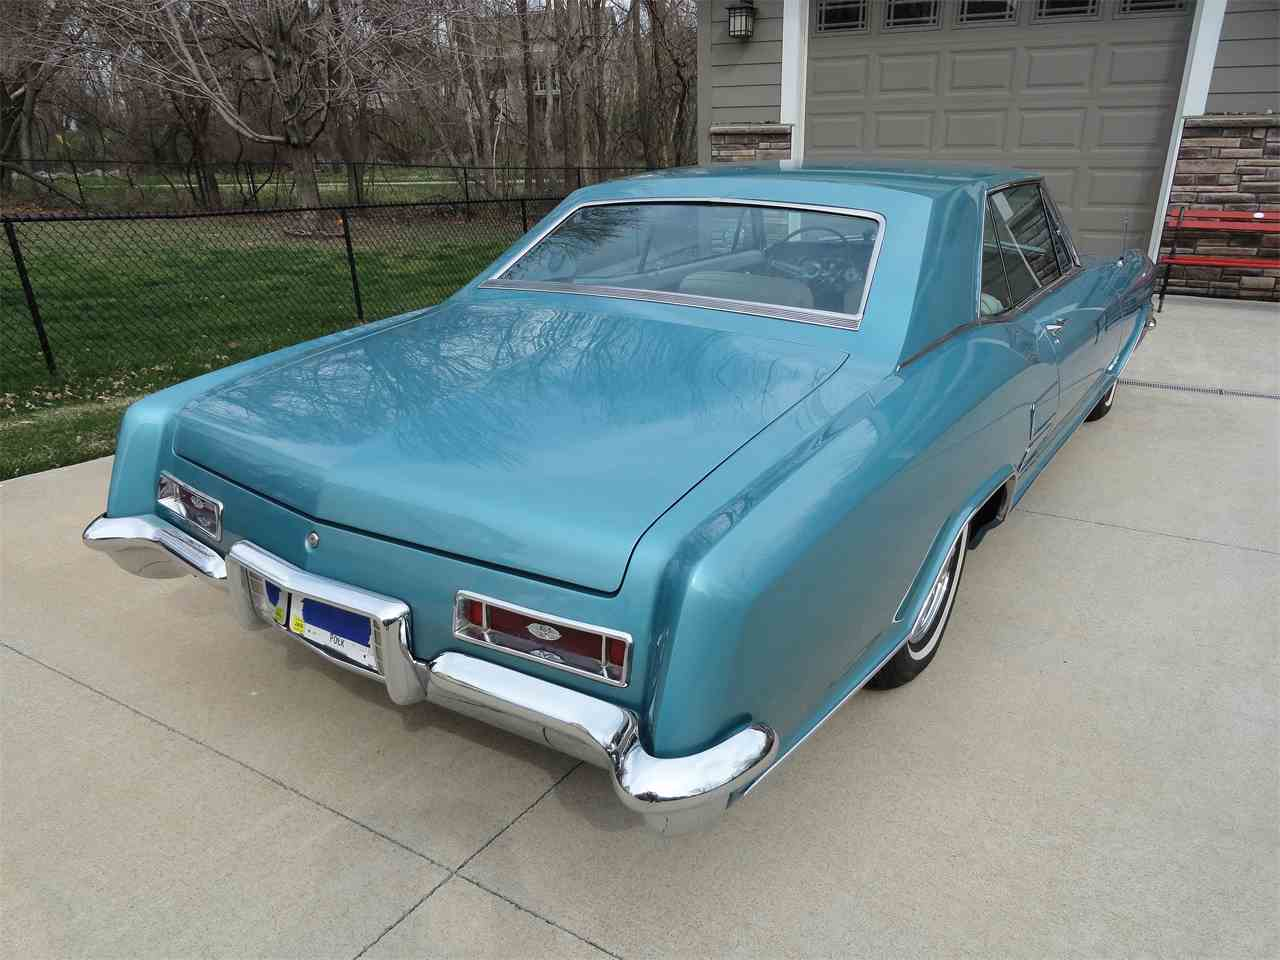 Large Picture of 1964 Buick Riviera - $31,500.00 - NCAV